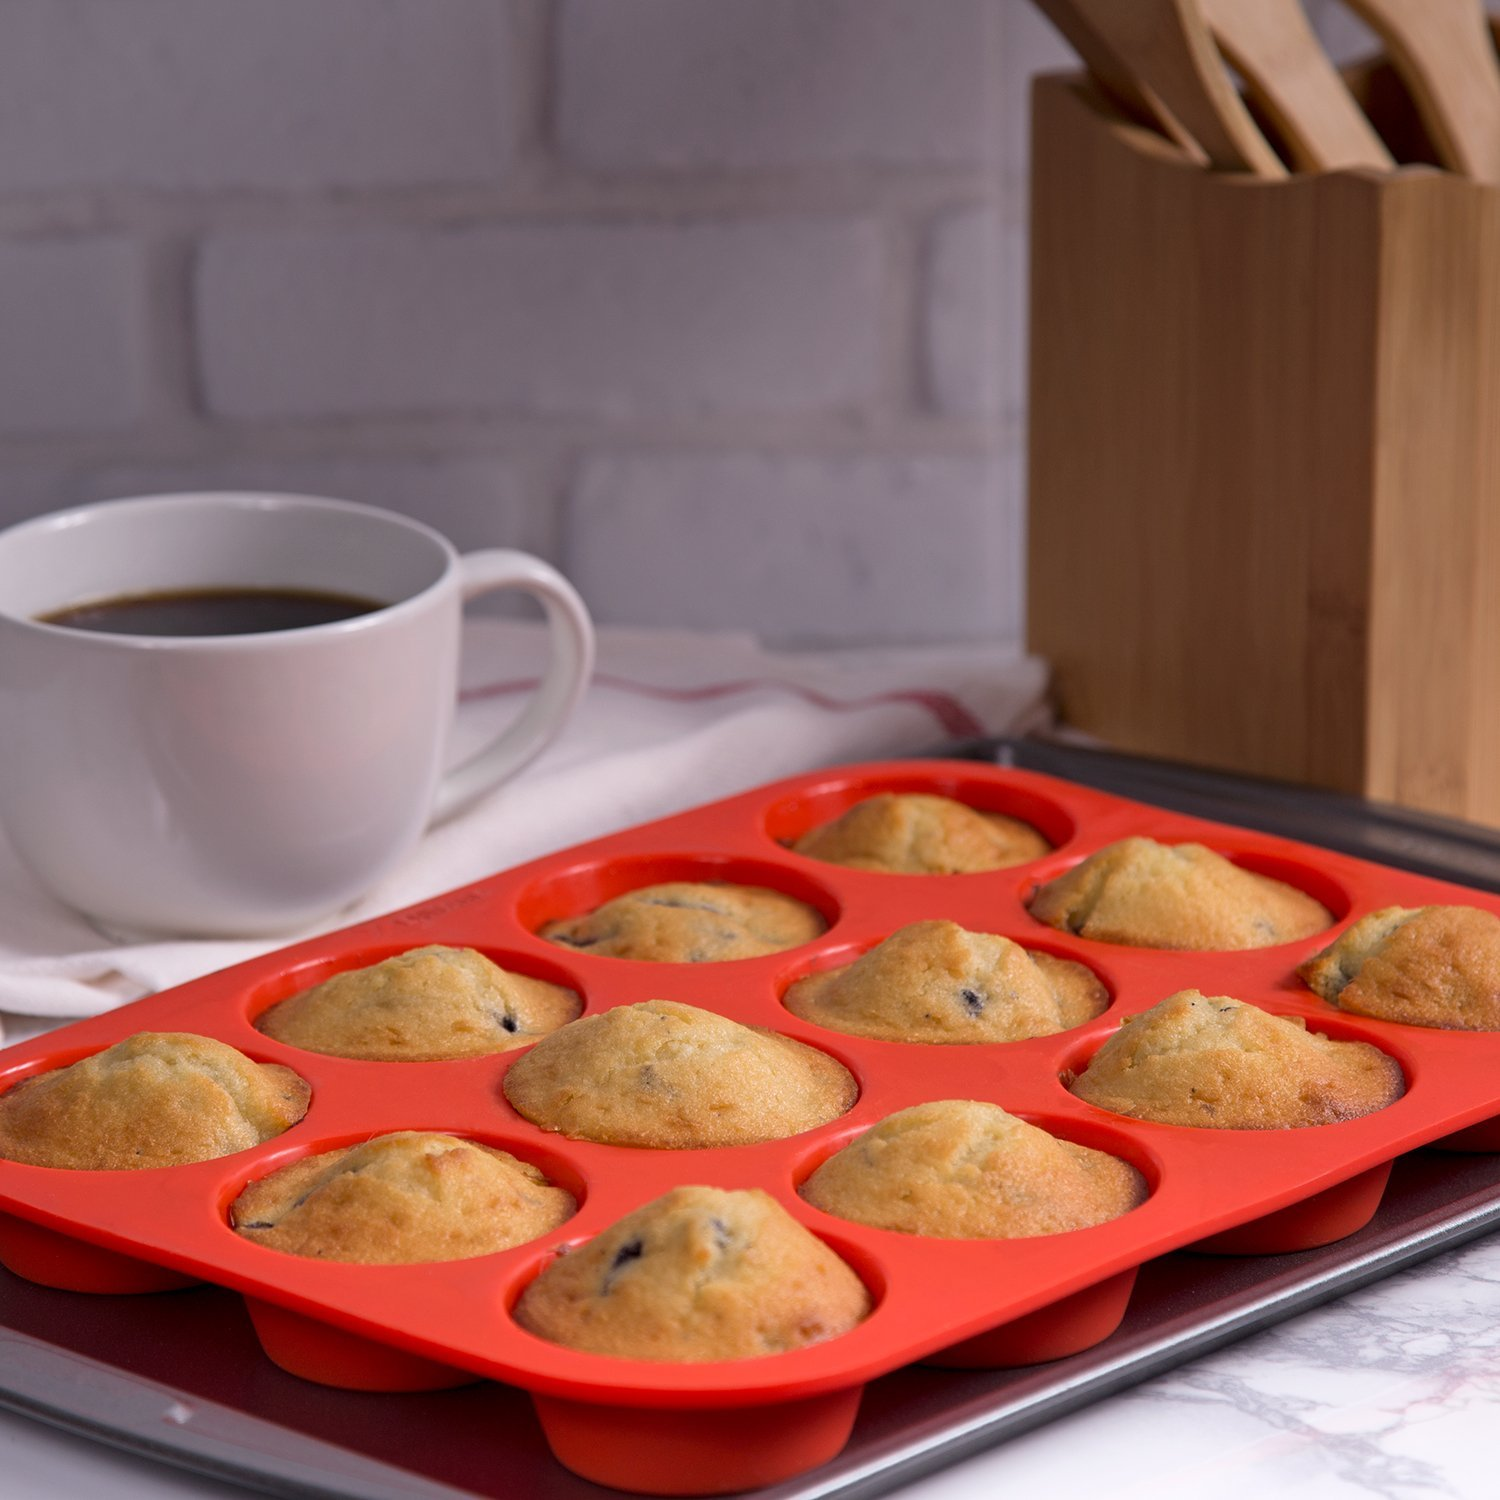 24 Cup Non Stick Silicone Muffin Amp Cupcake Baking Pan Only